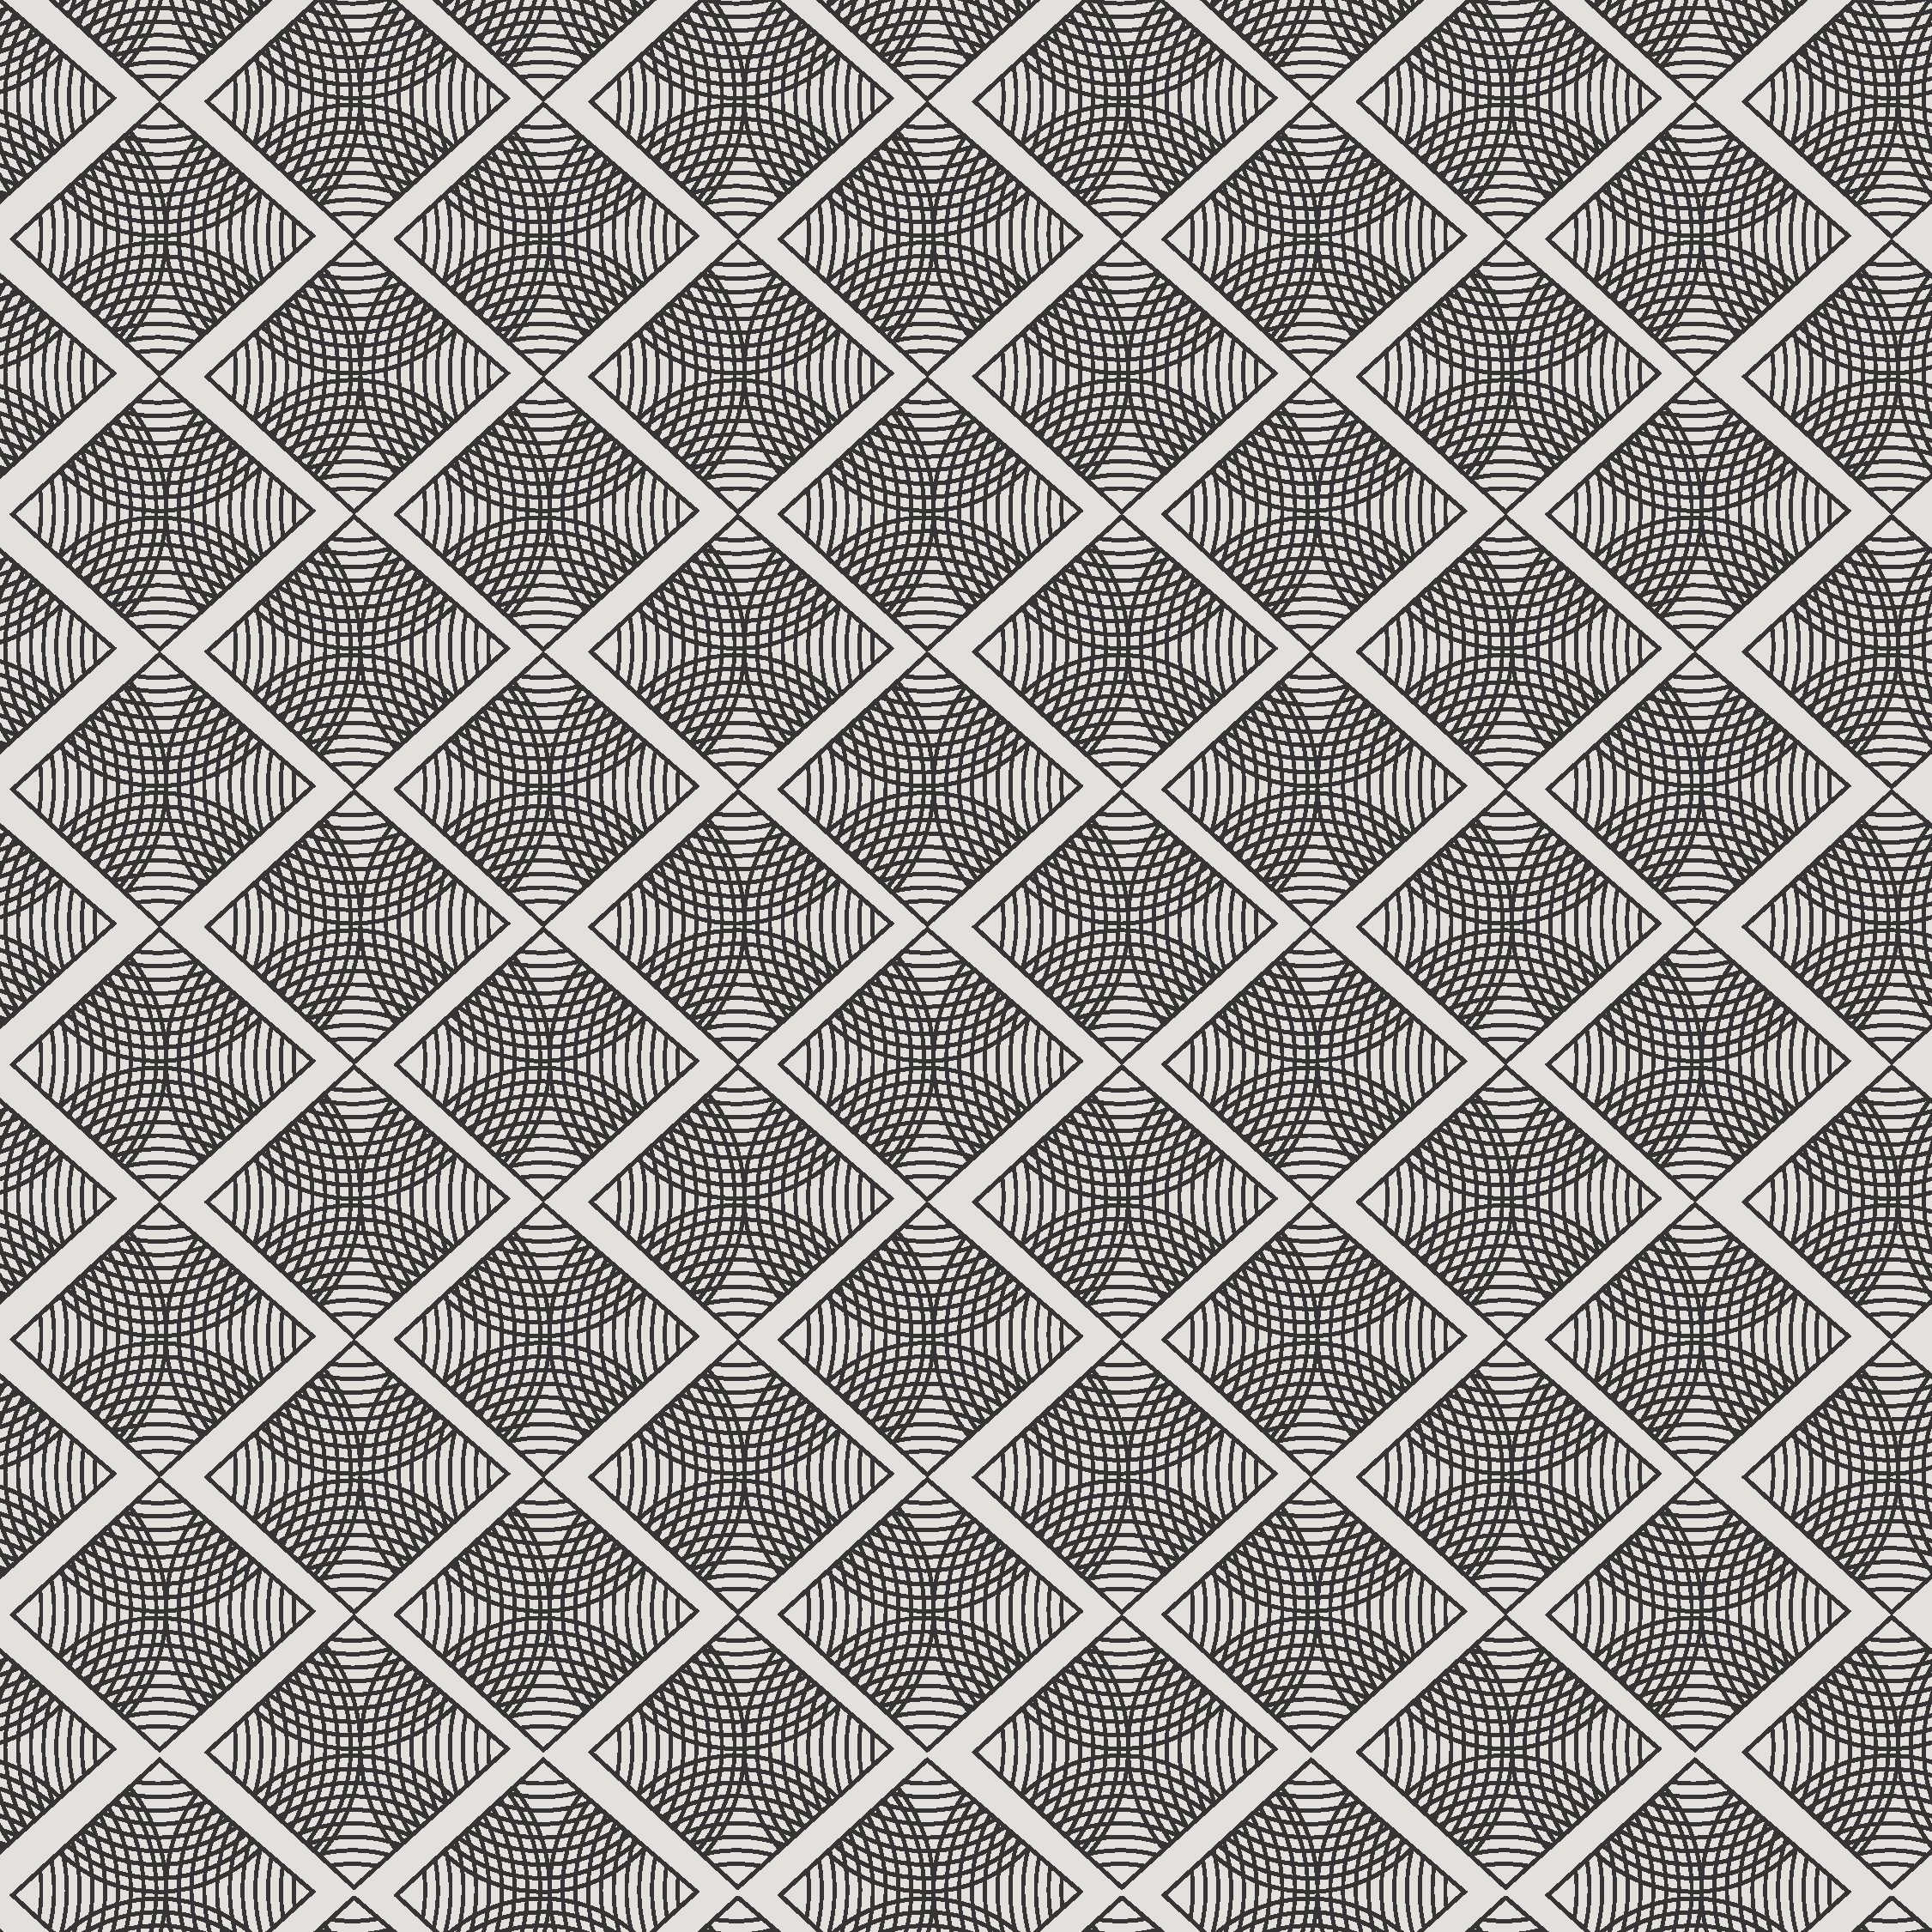 Rachael Polglaze Houston Photographer Brand and Pattern Design by Kindly by Kelsea